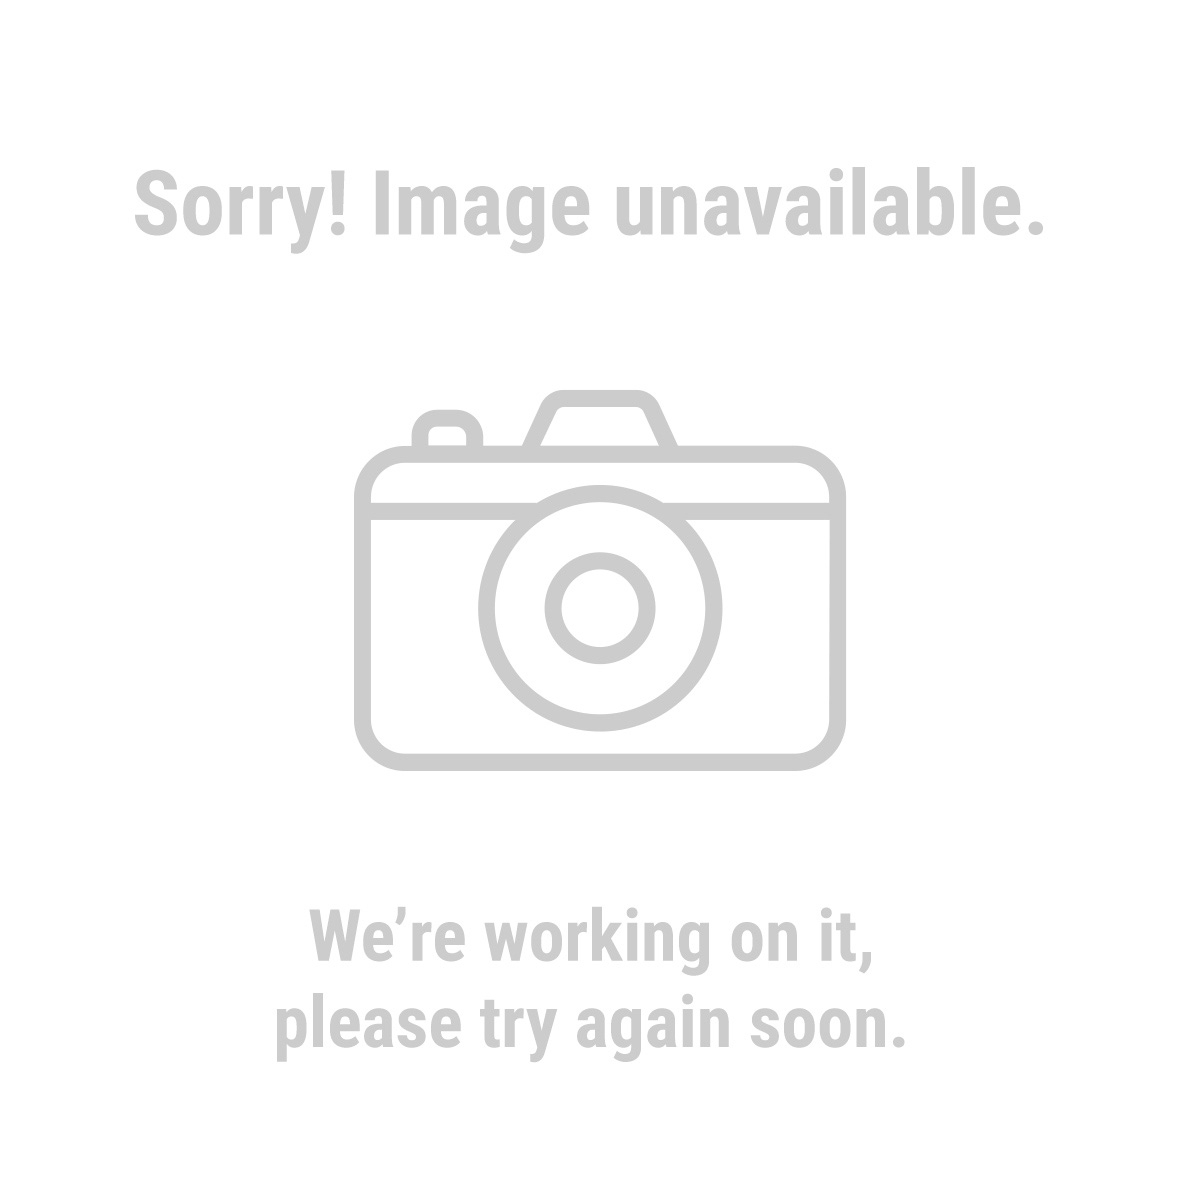 Pittsburgh® 62293 35 Pc 3/8 in. Drive SAE & Metric High Visibility Socket Set